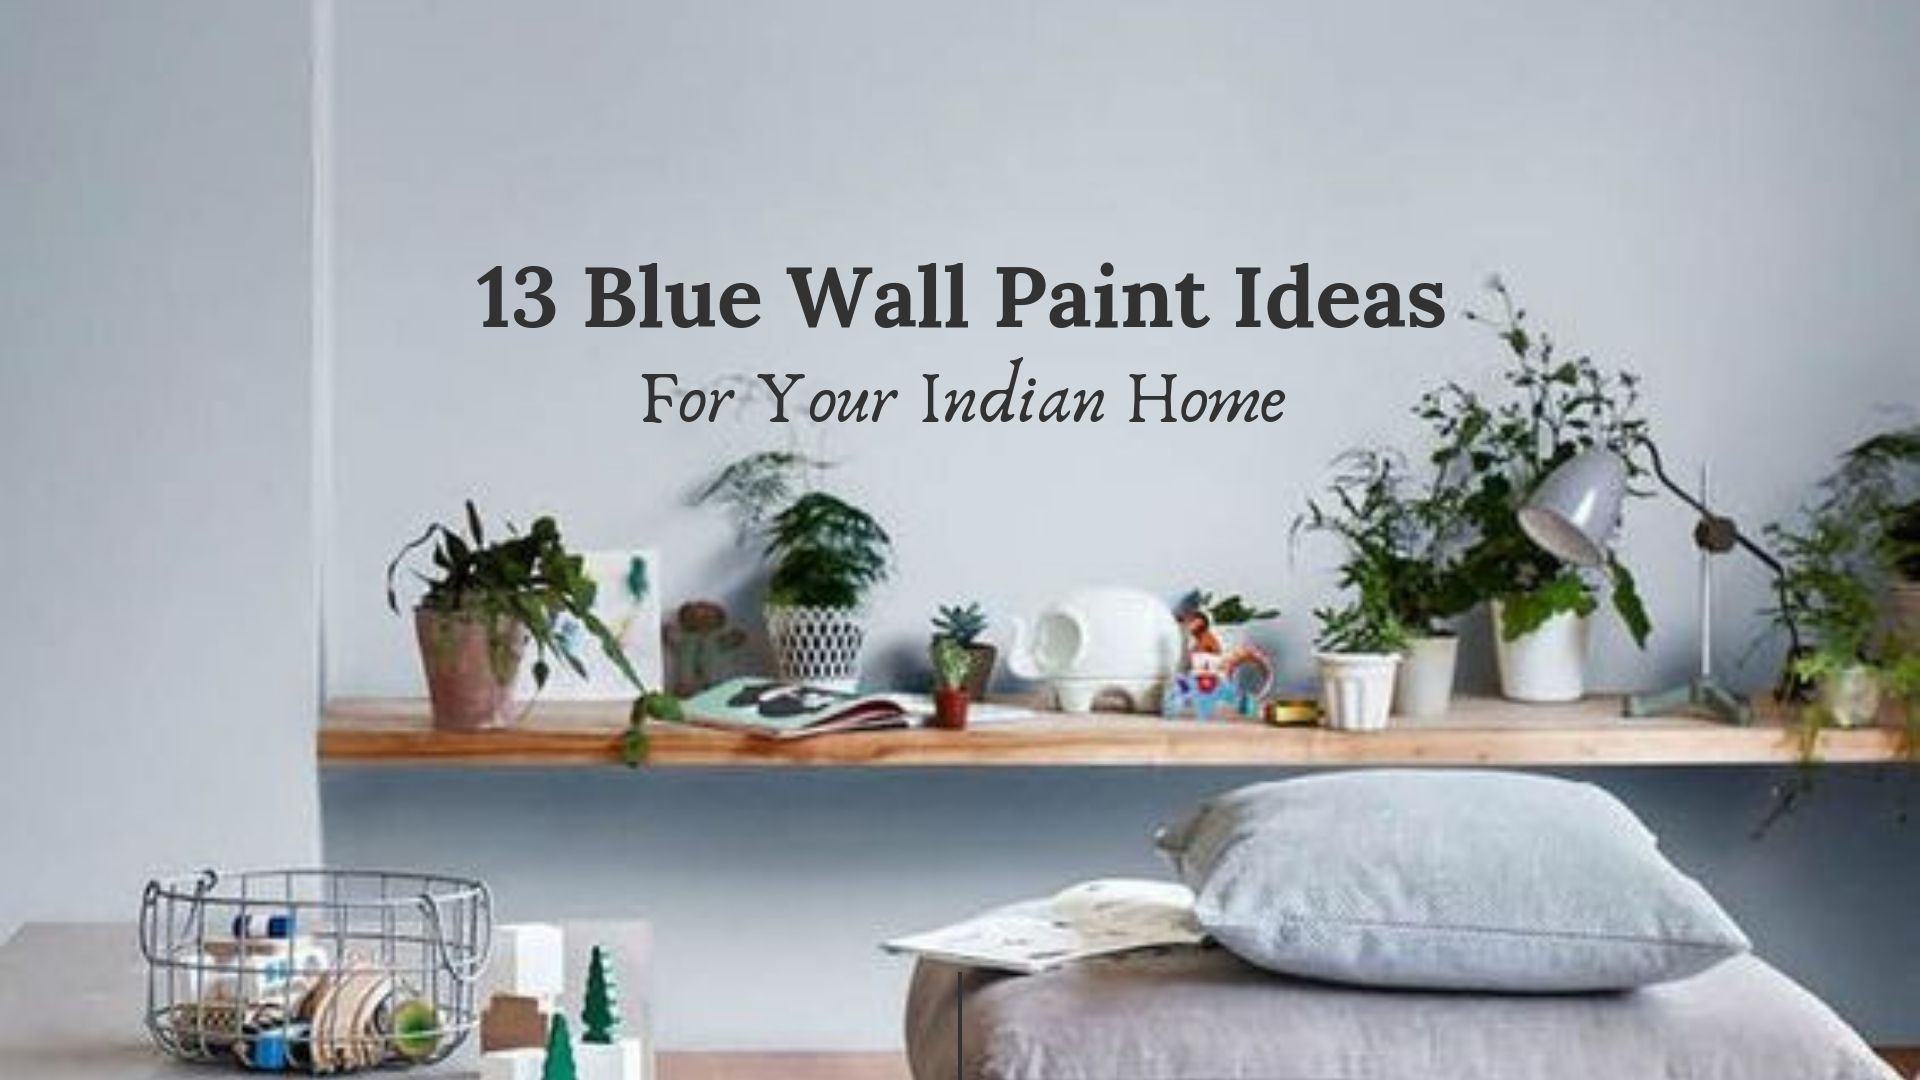 13 Best Blue Wall Paint Ideas For Indian Homes And Apartments